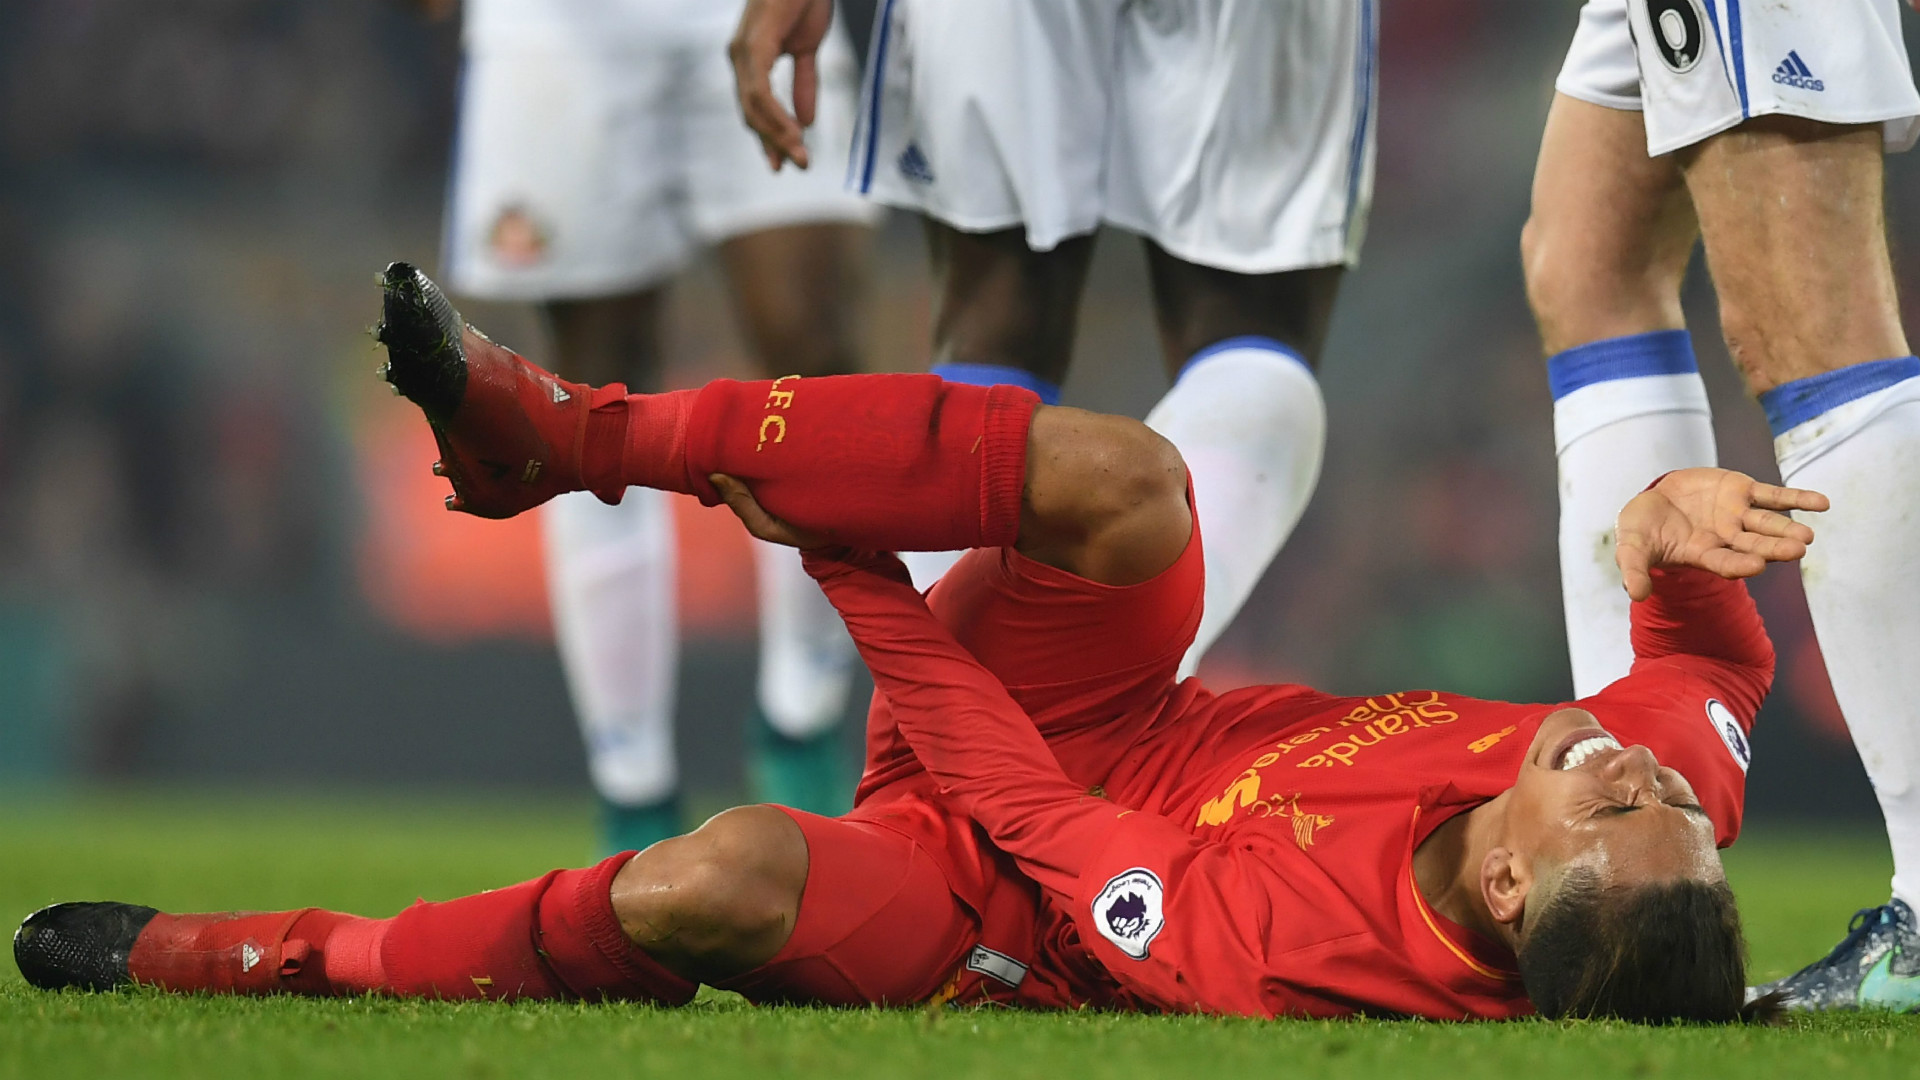 Klopp optimistic about scan on Coutinho ankle injury